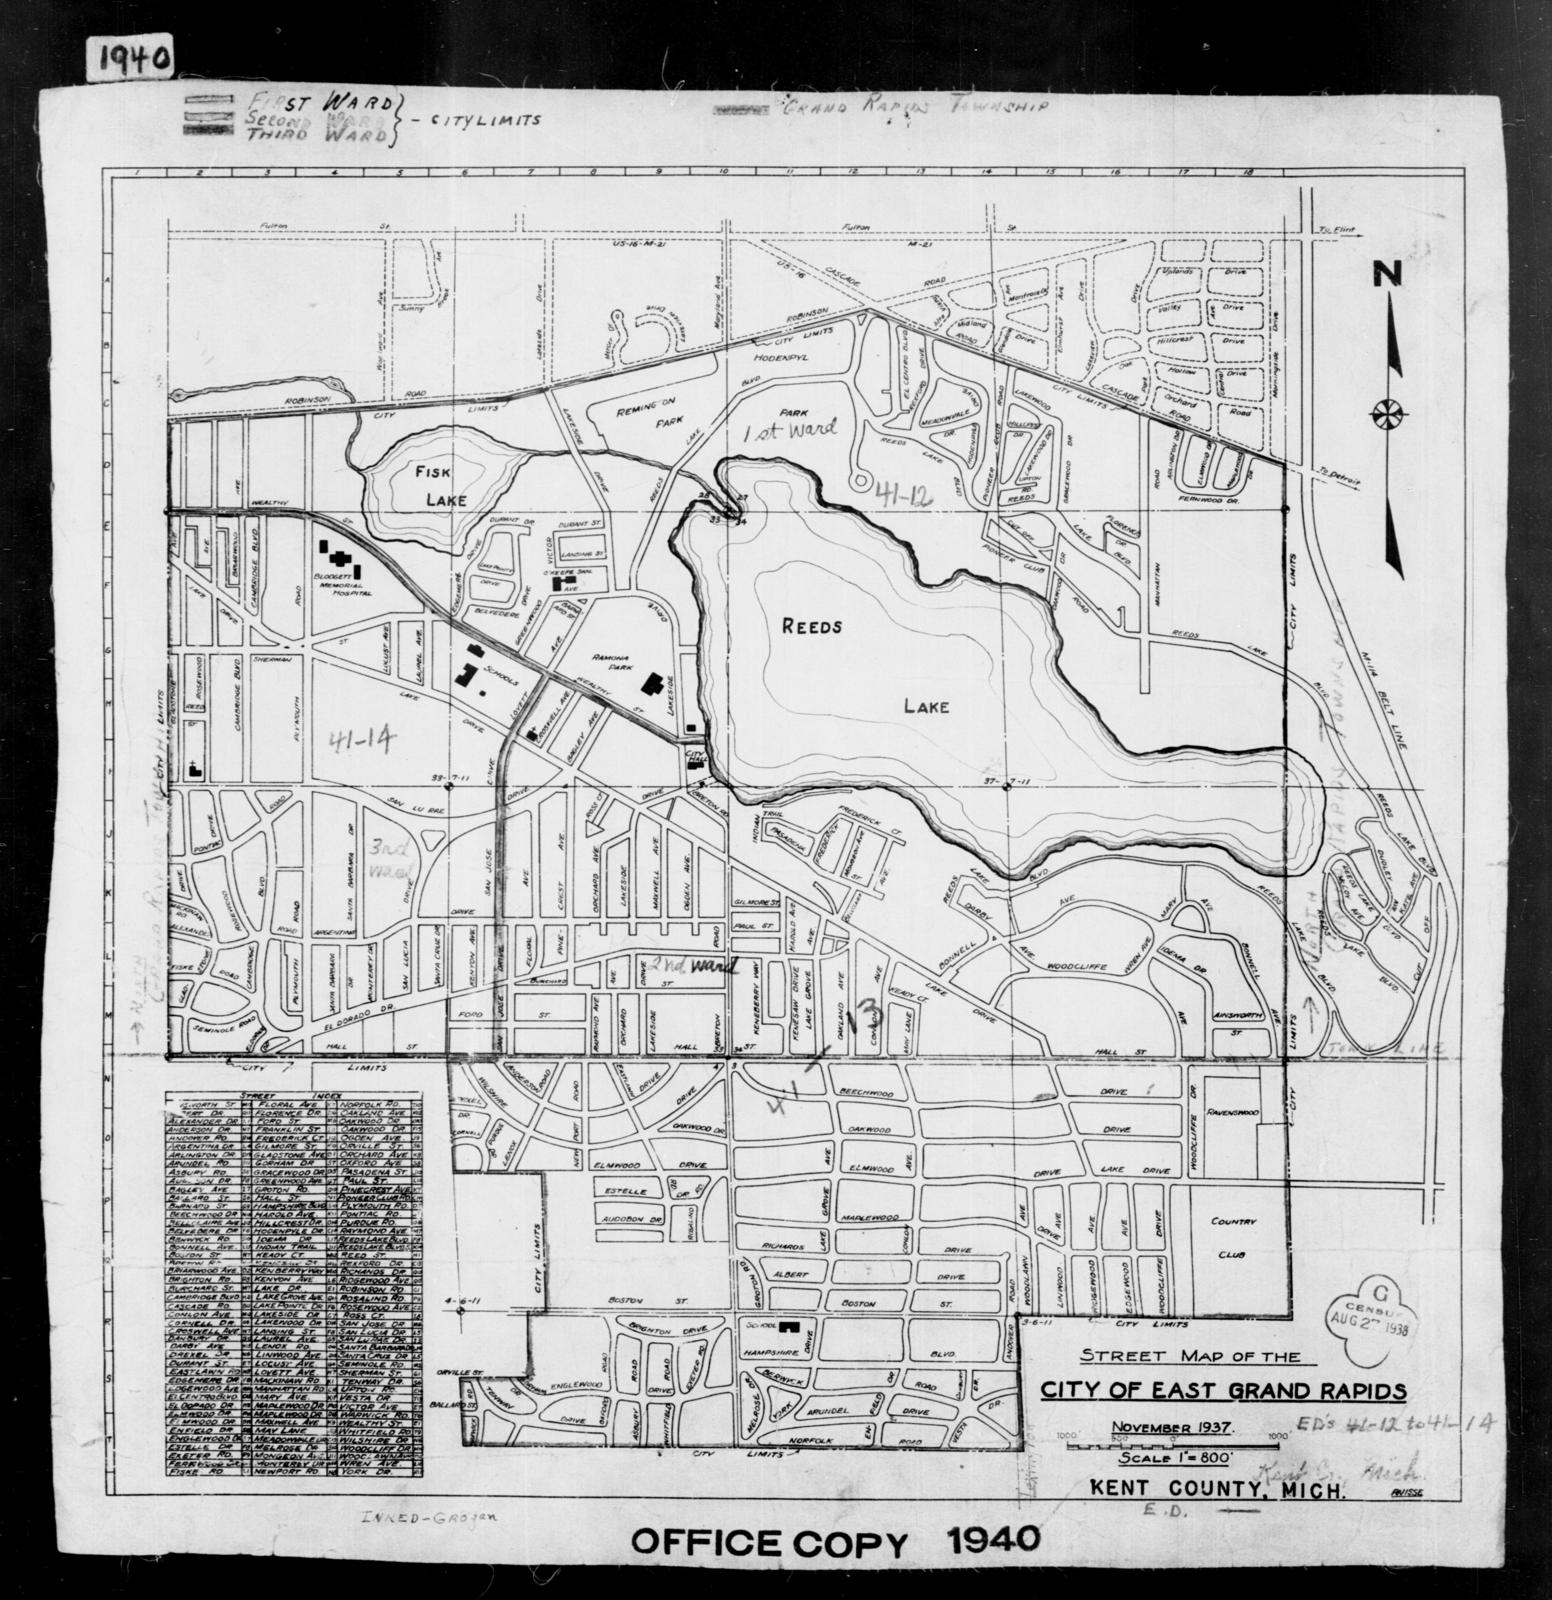 1940 Census Enumeration District Maps Michigan Kent County East Grand Rapids Ed 41 12 Ed 41 13 Ed 41 14 U S National Archives Public Domain Image